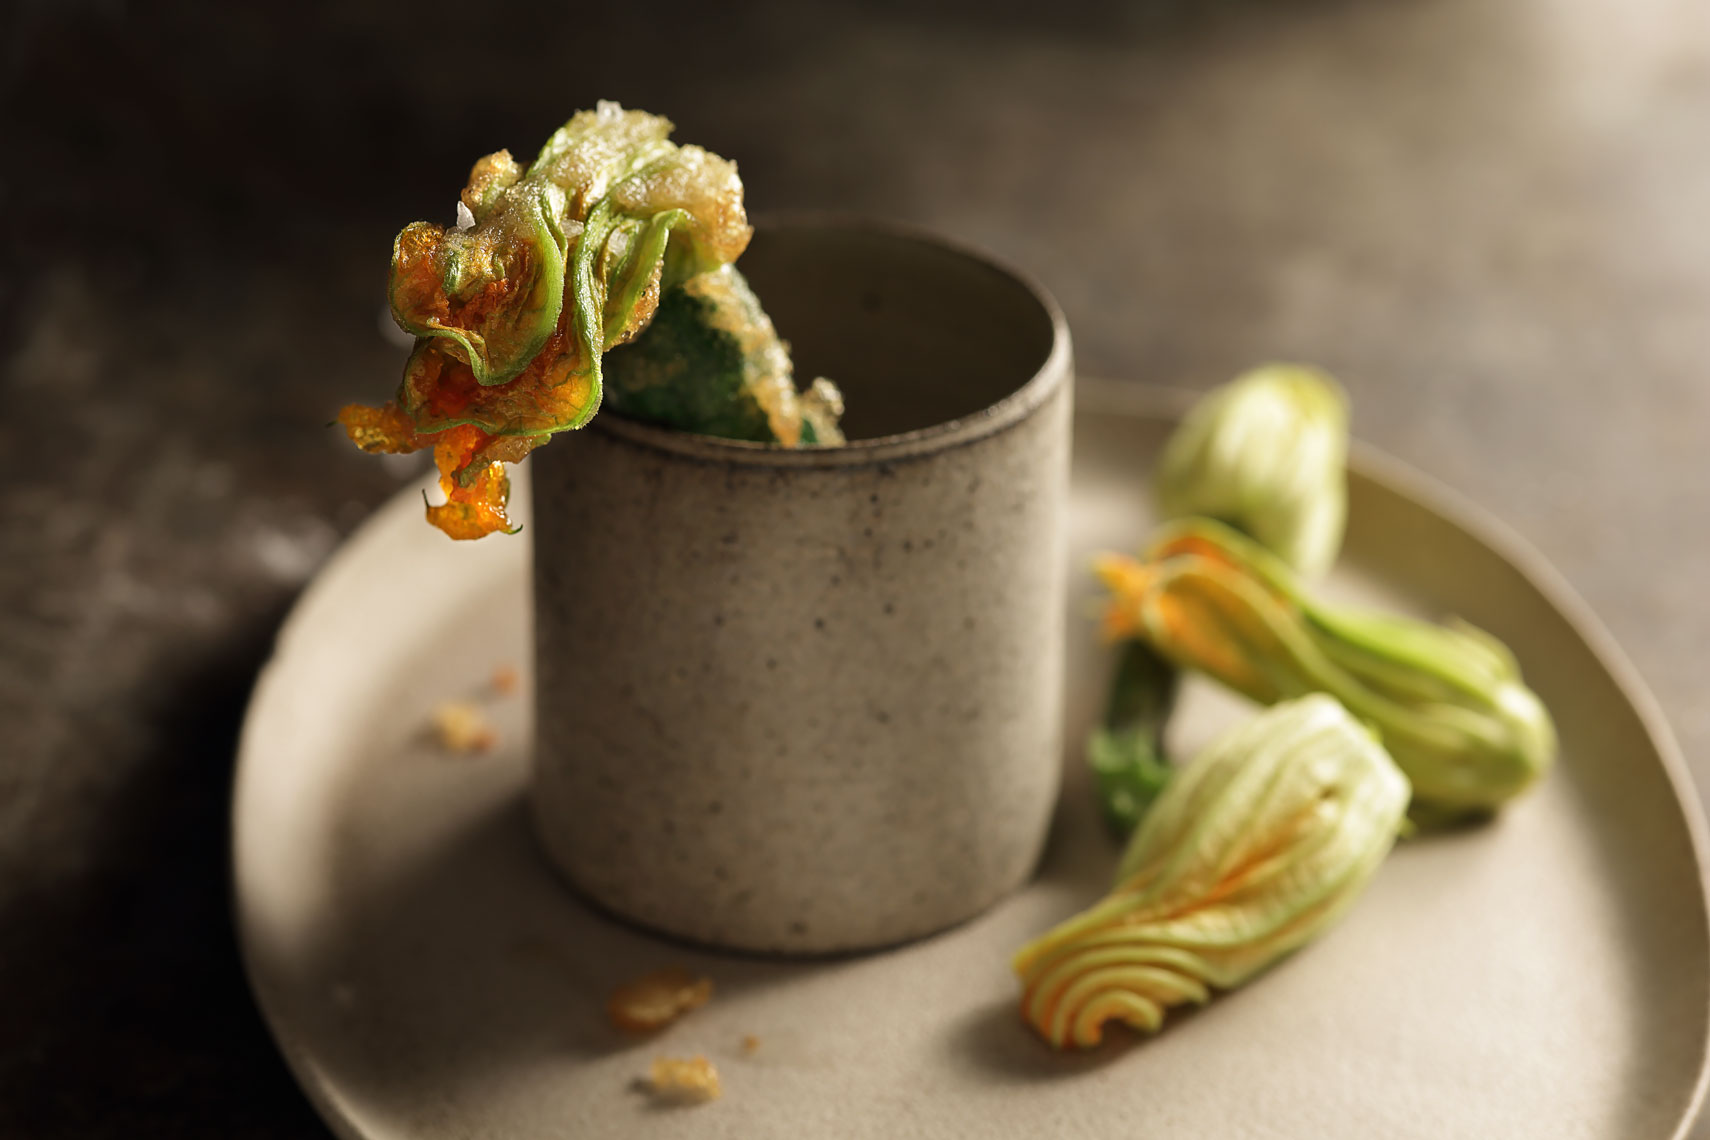 Squash Blossom In Cup  - Beverage Food  Photography- © Aristo Studios